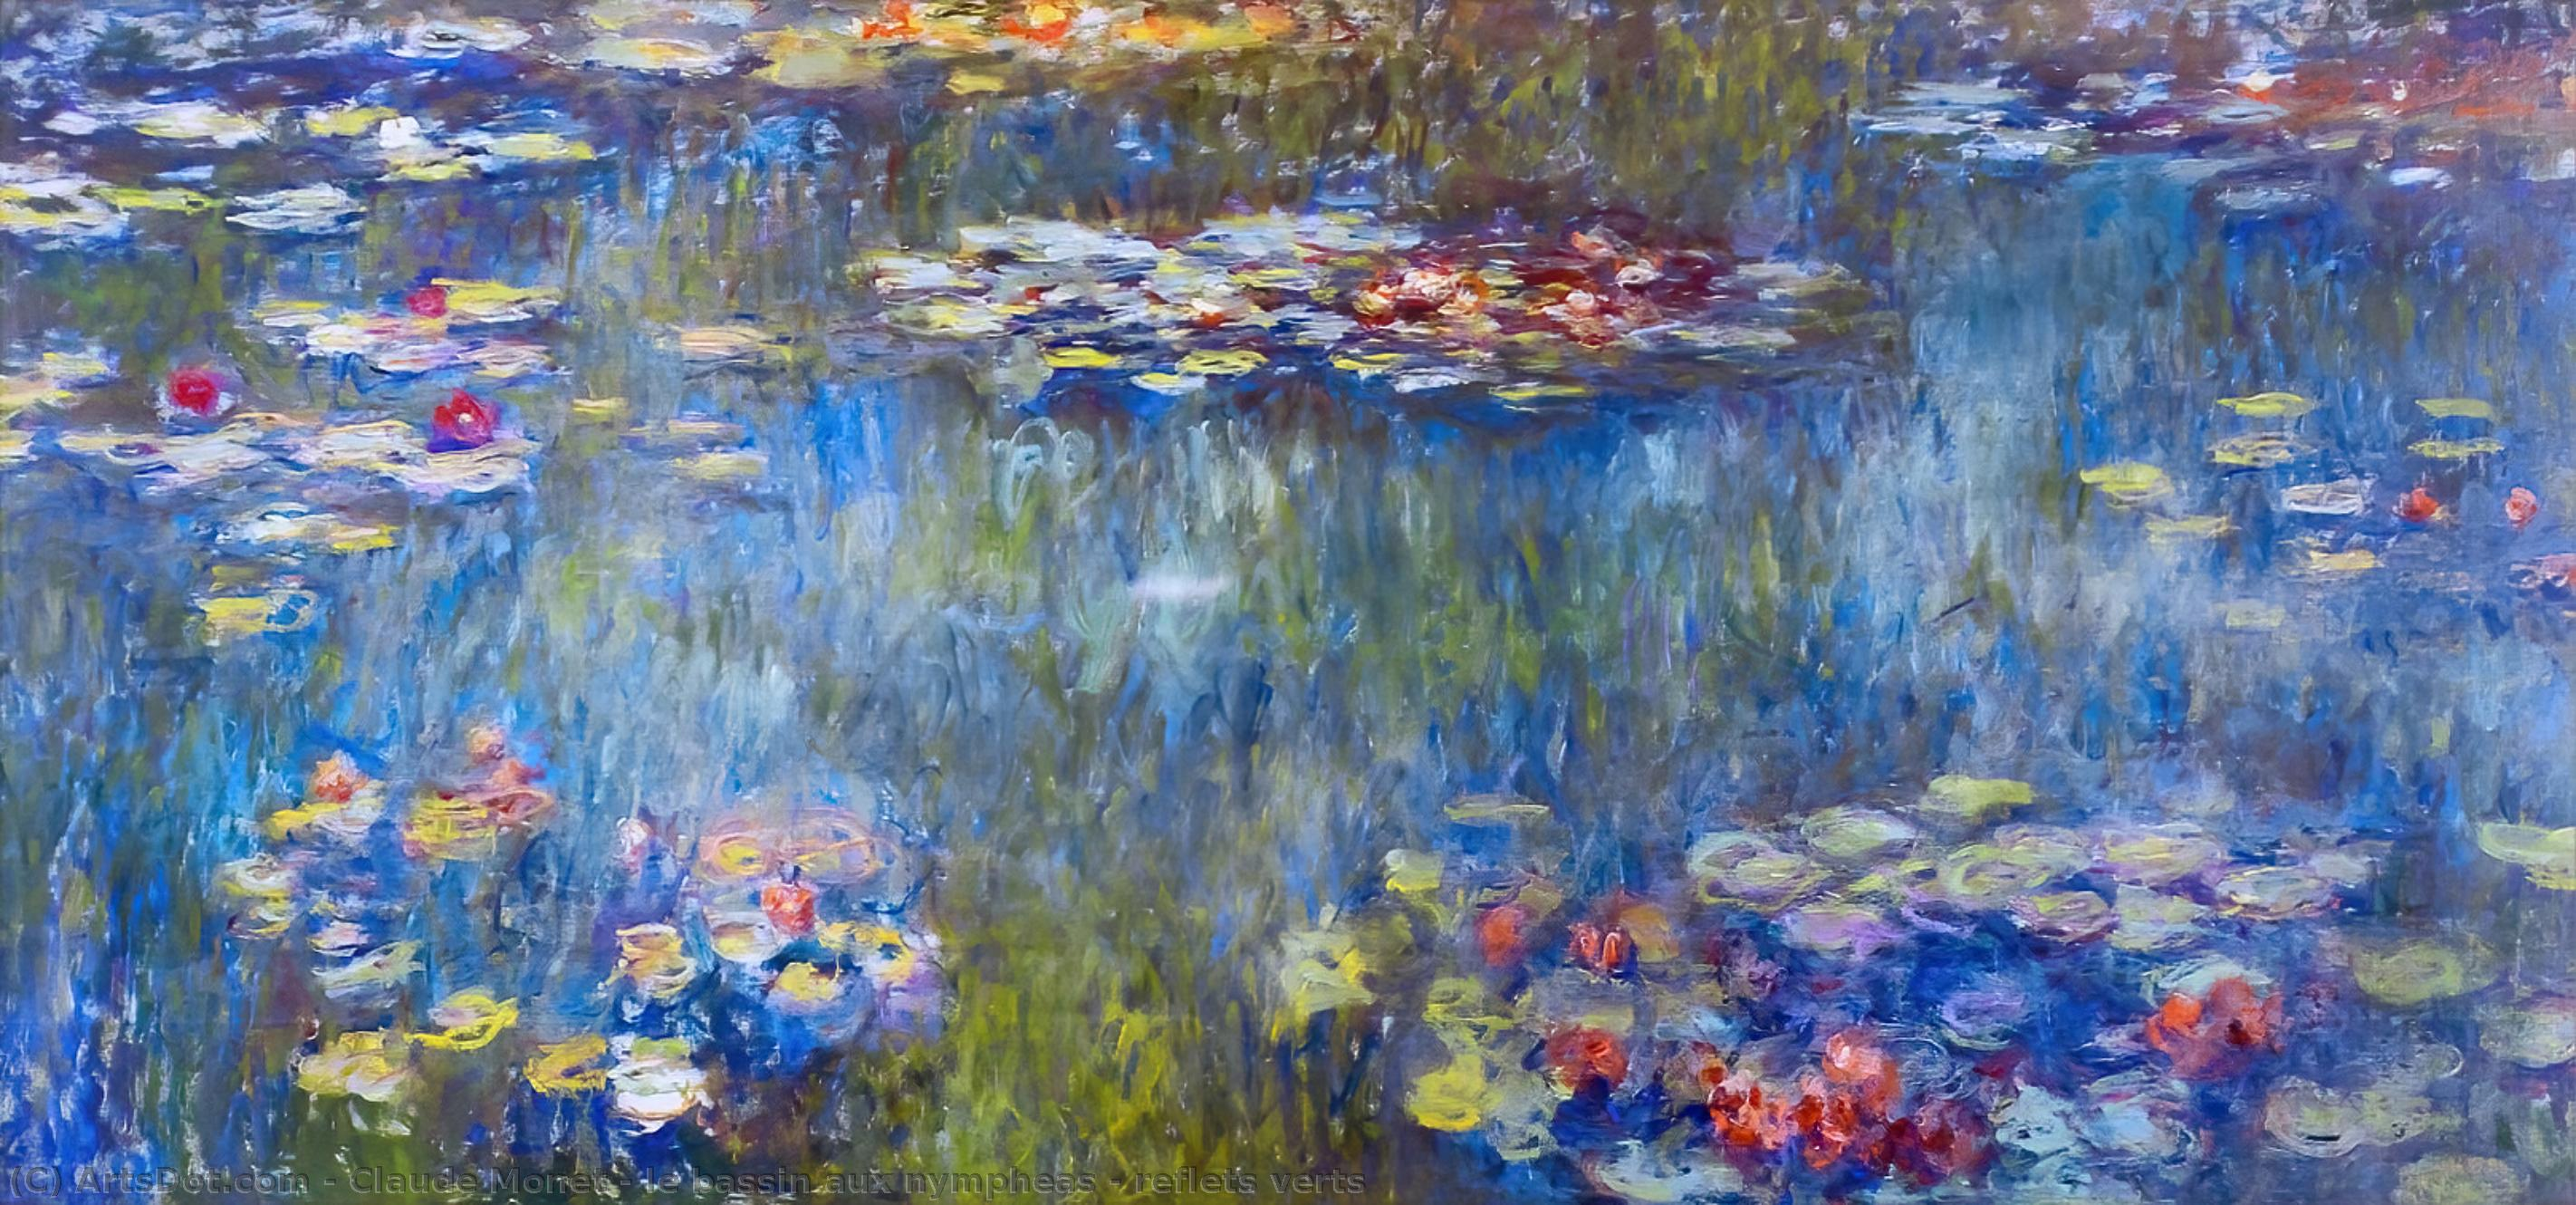 Wikioo.org - The Encyclopedia of Fine Arts - Painting, Artwork by Claude Monet - le bassin aux nympheas - reflets verts